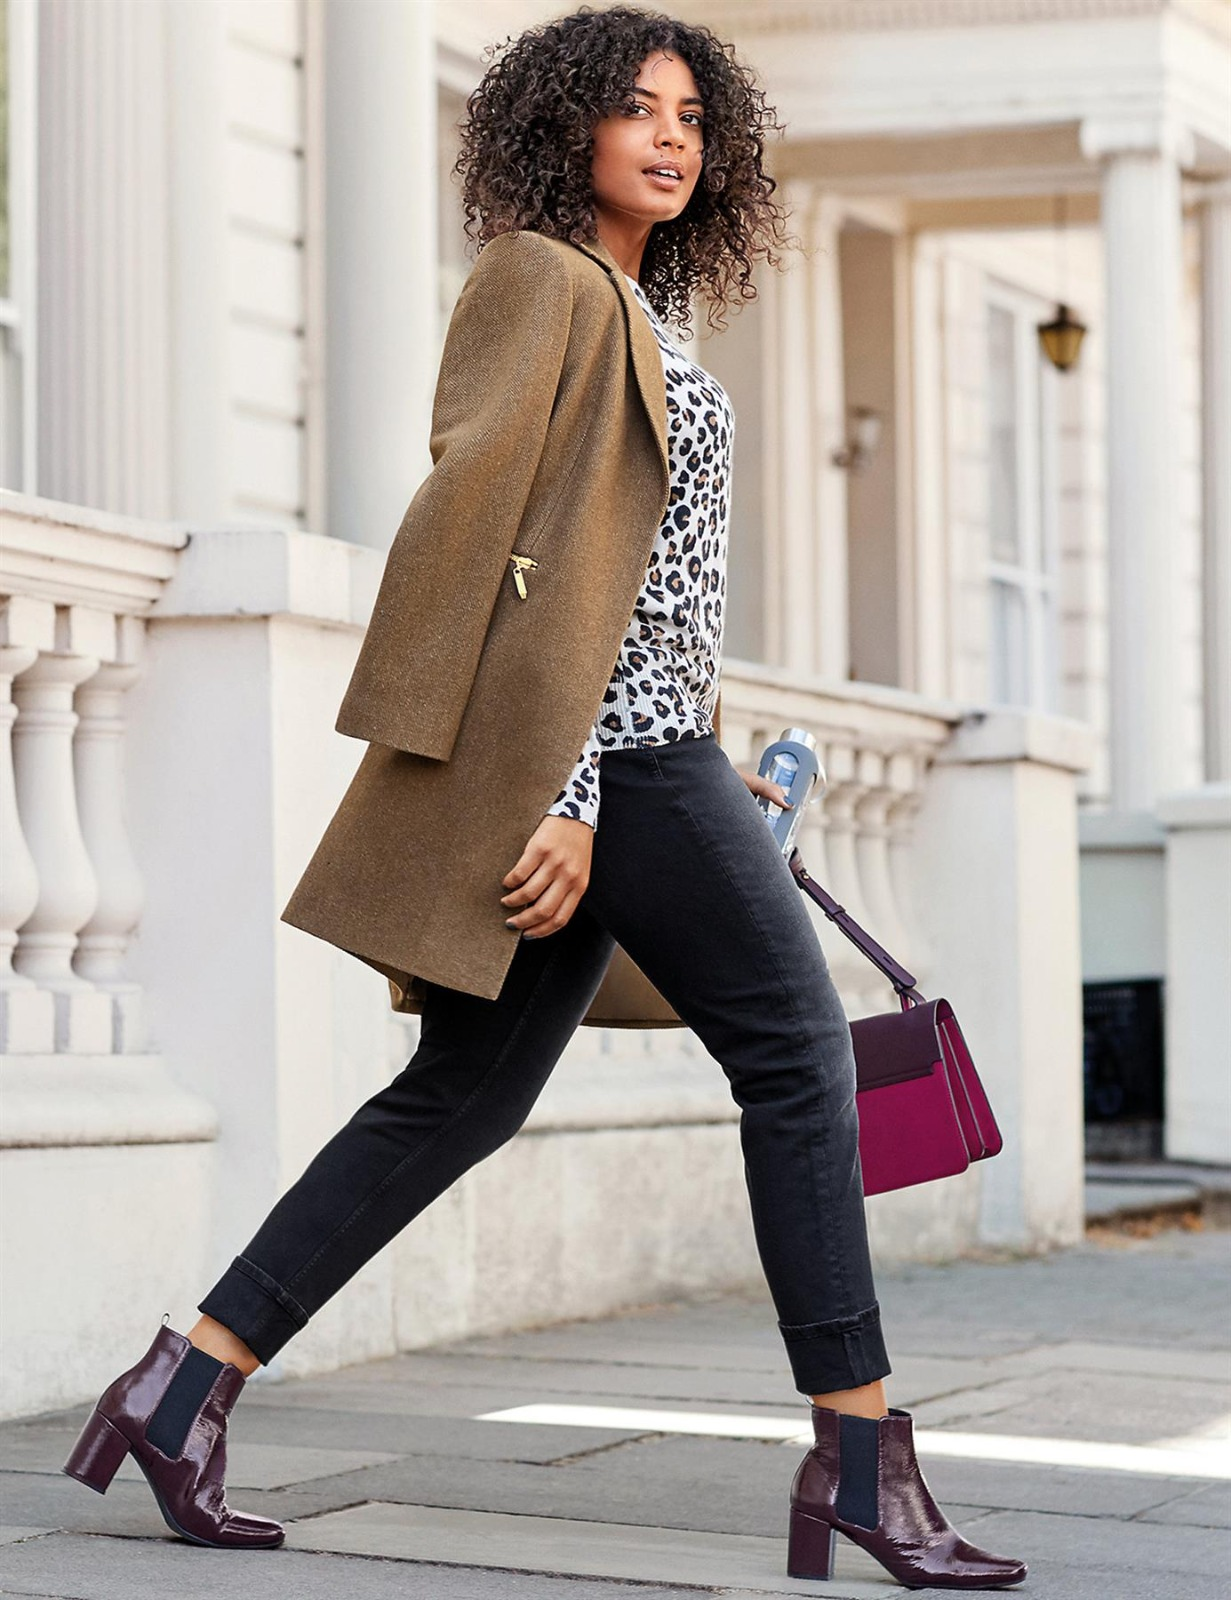 M-amp-S-Wool-Blend-Single-Breasted-Pink-Brown-Winter-Coat-Holly-Willoughby-Size-6-24 thumbnail 17